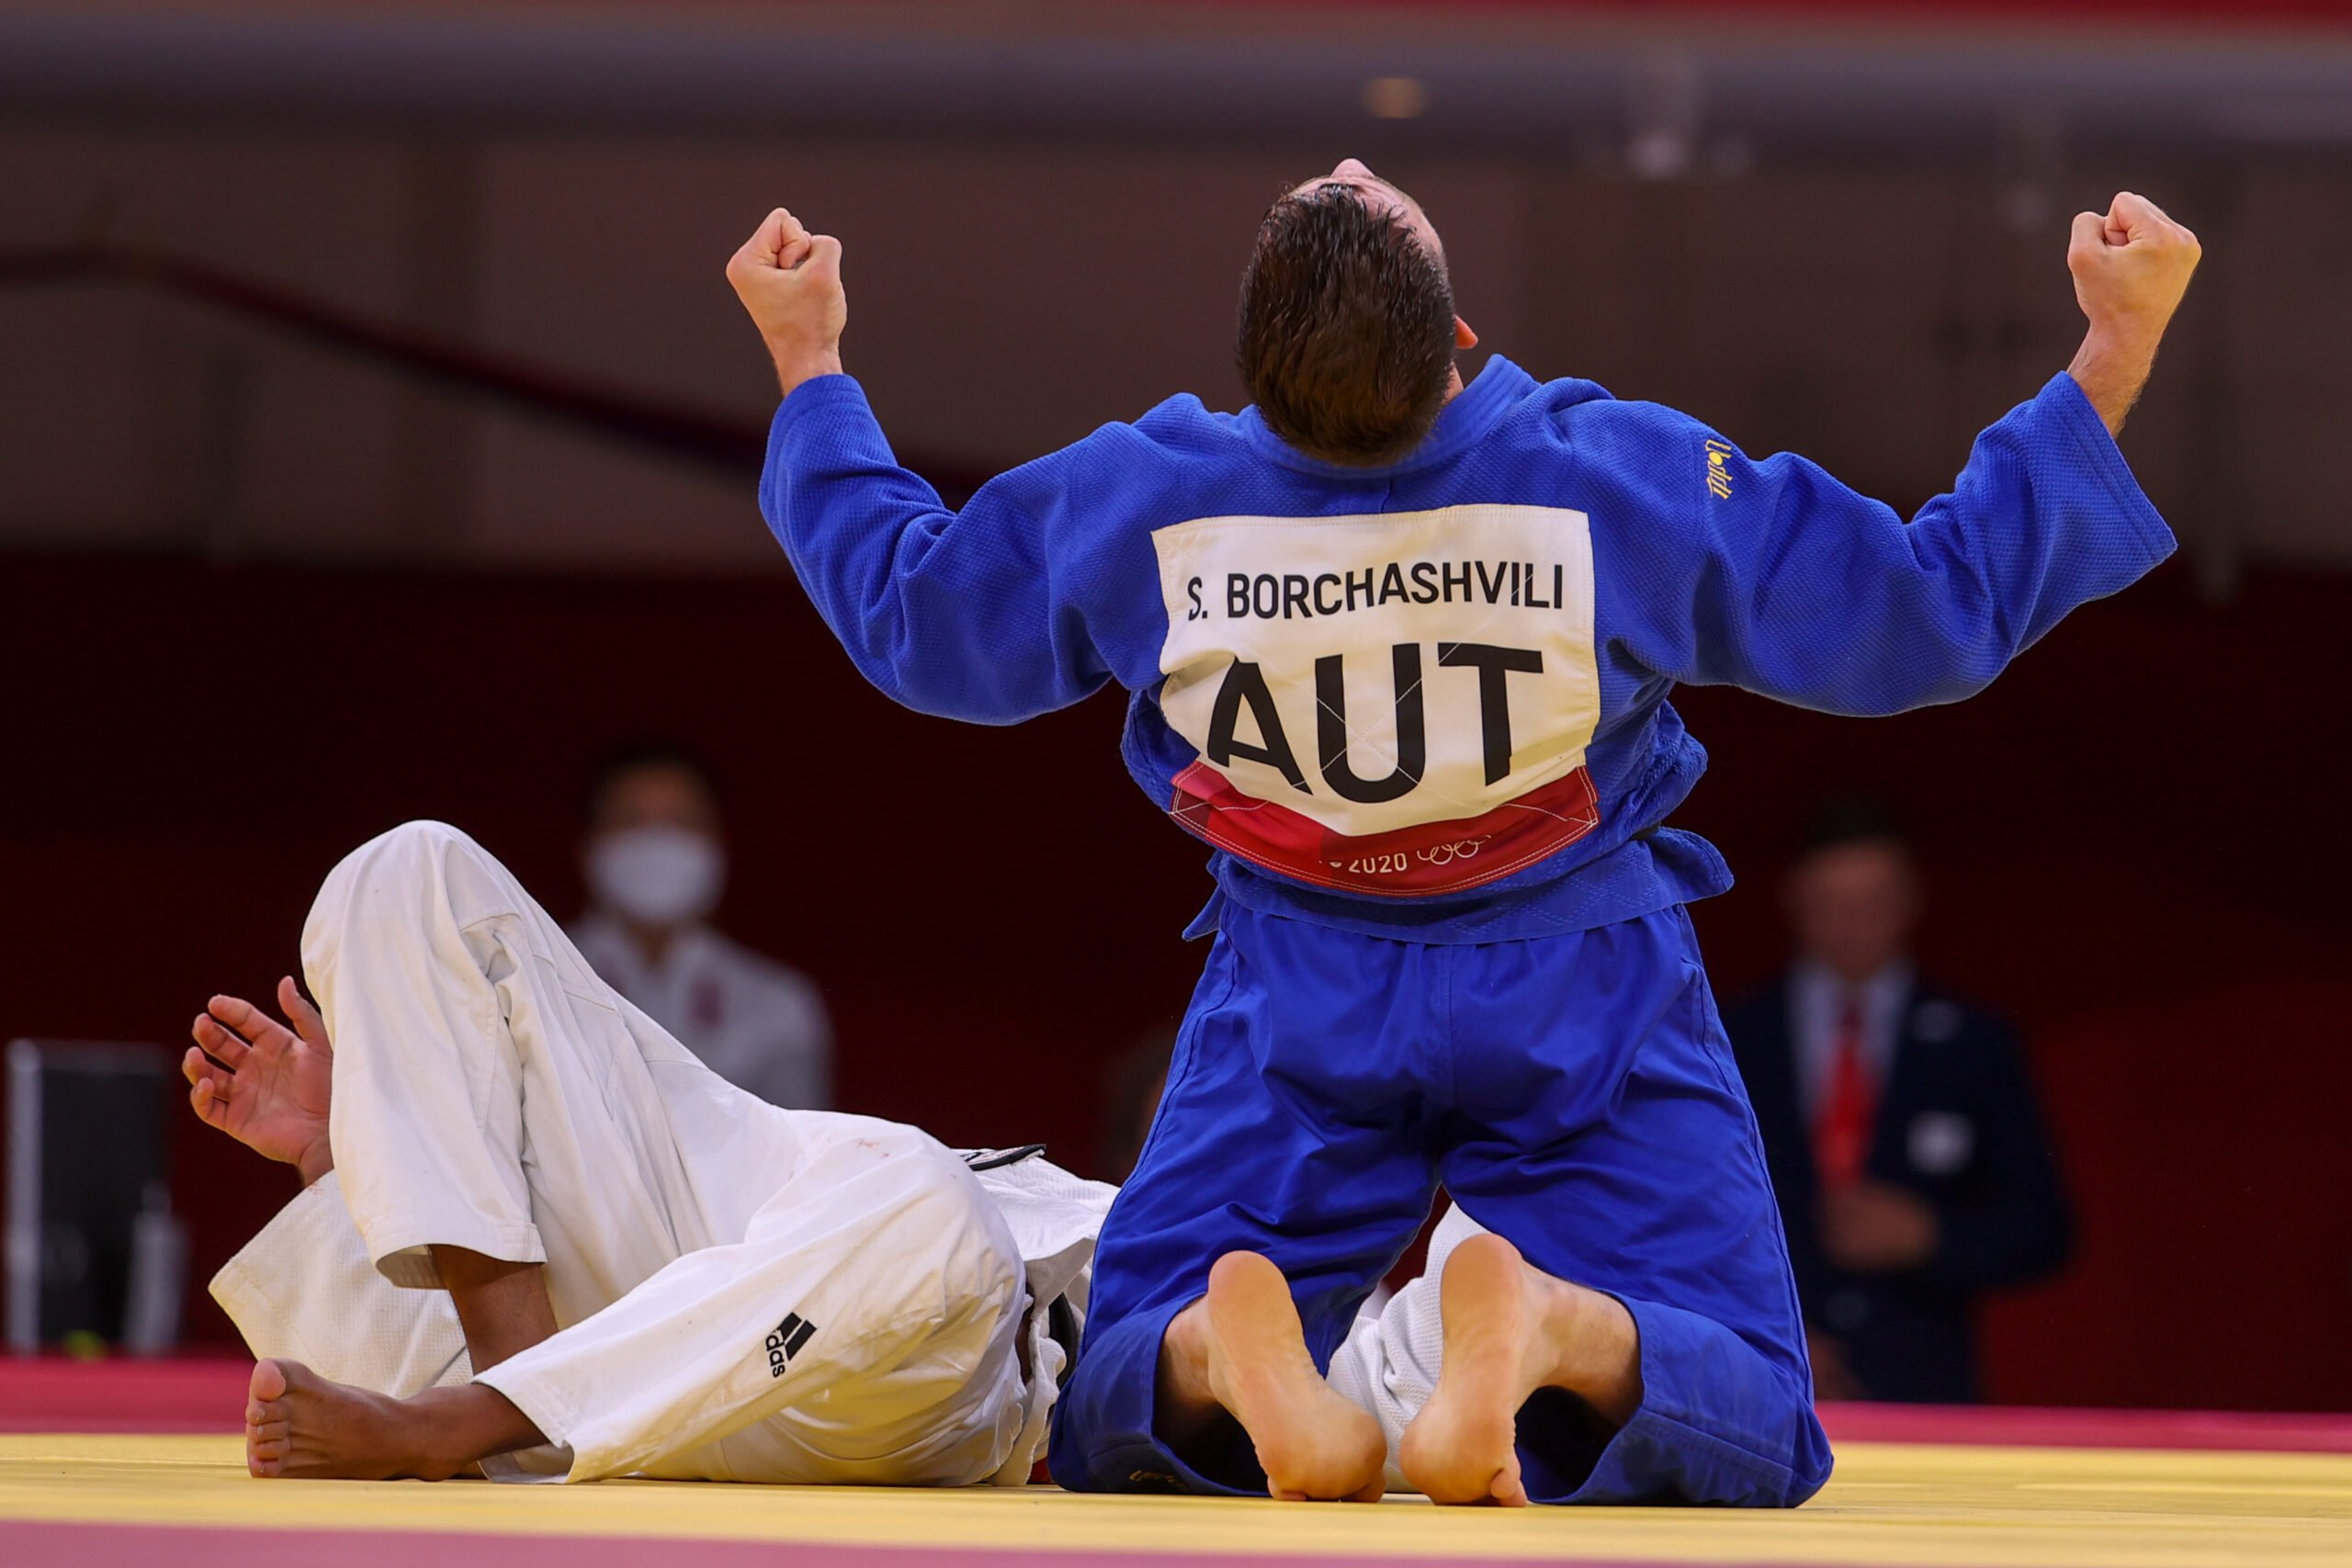 BORCHASHVILI AND POLLERES SEIZE BEST OLYMPIC RESULTS SINCE 1984